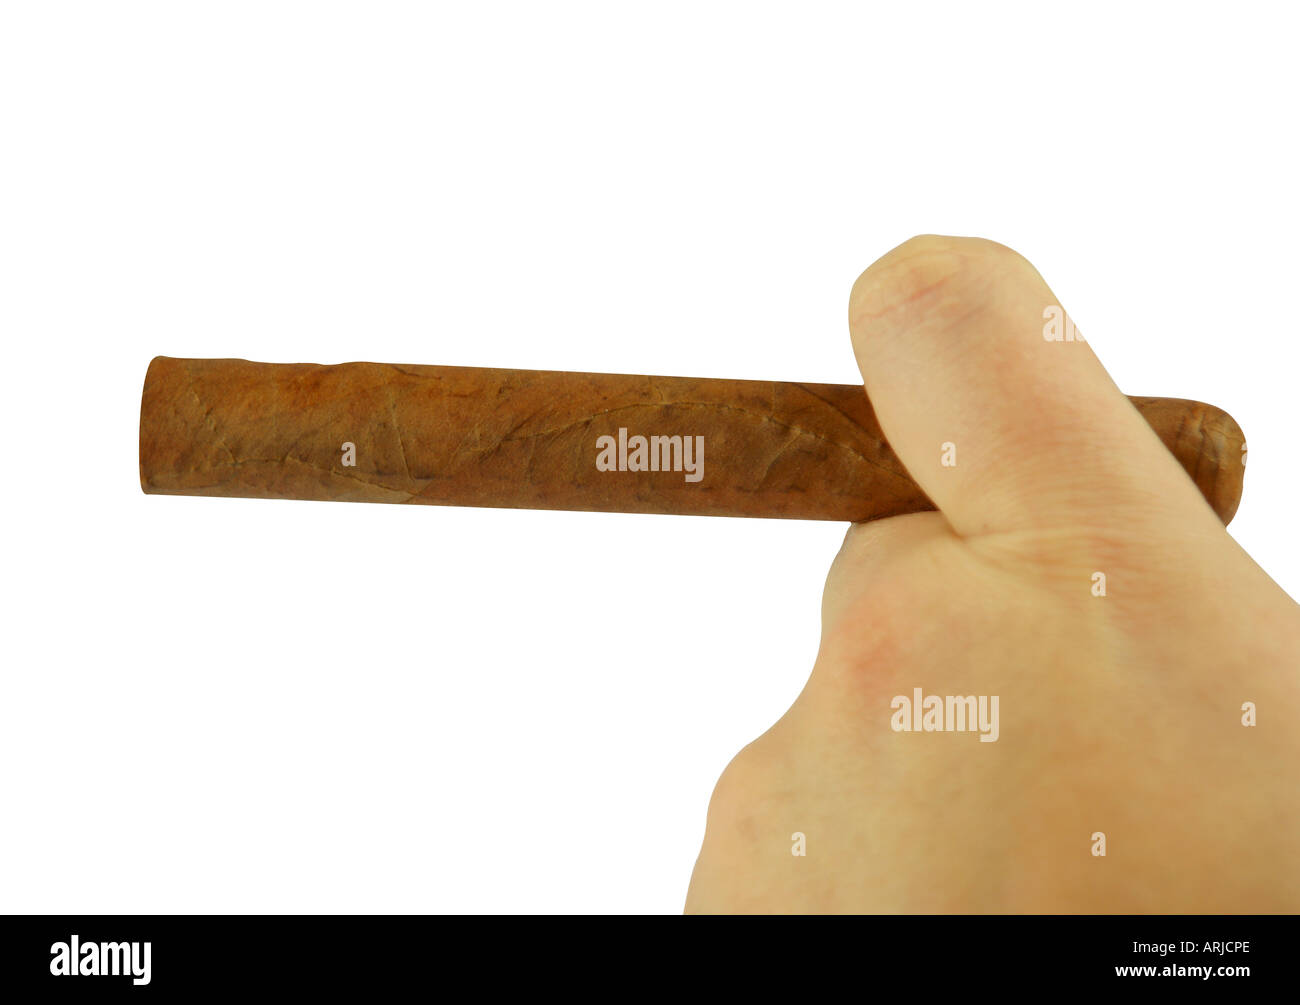 Male hand holding unlit cigar - Stock Image